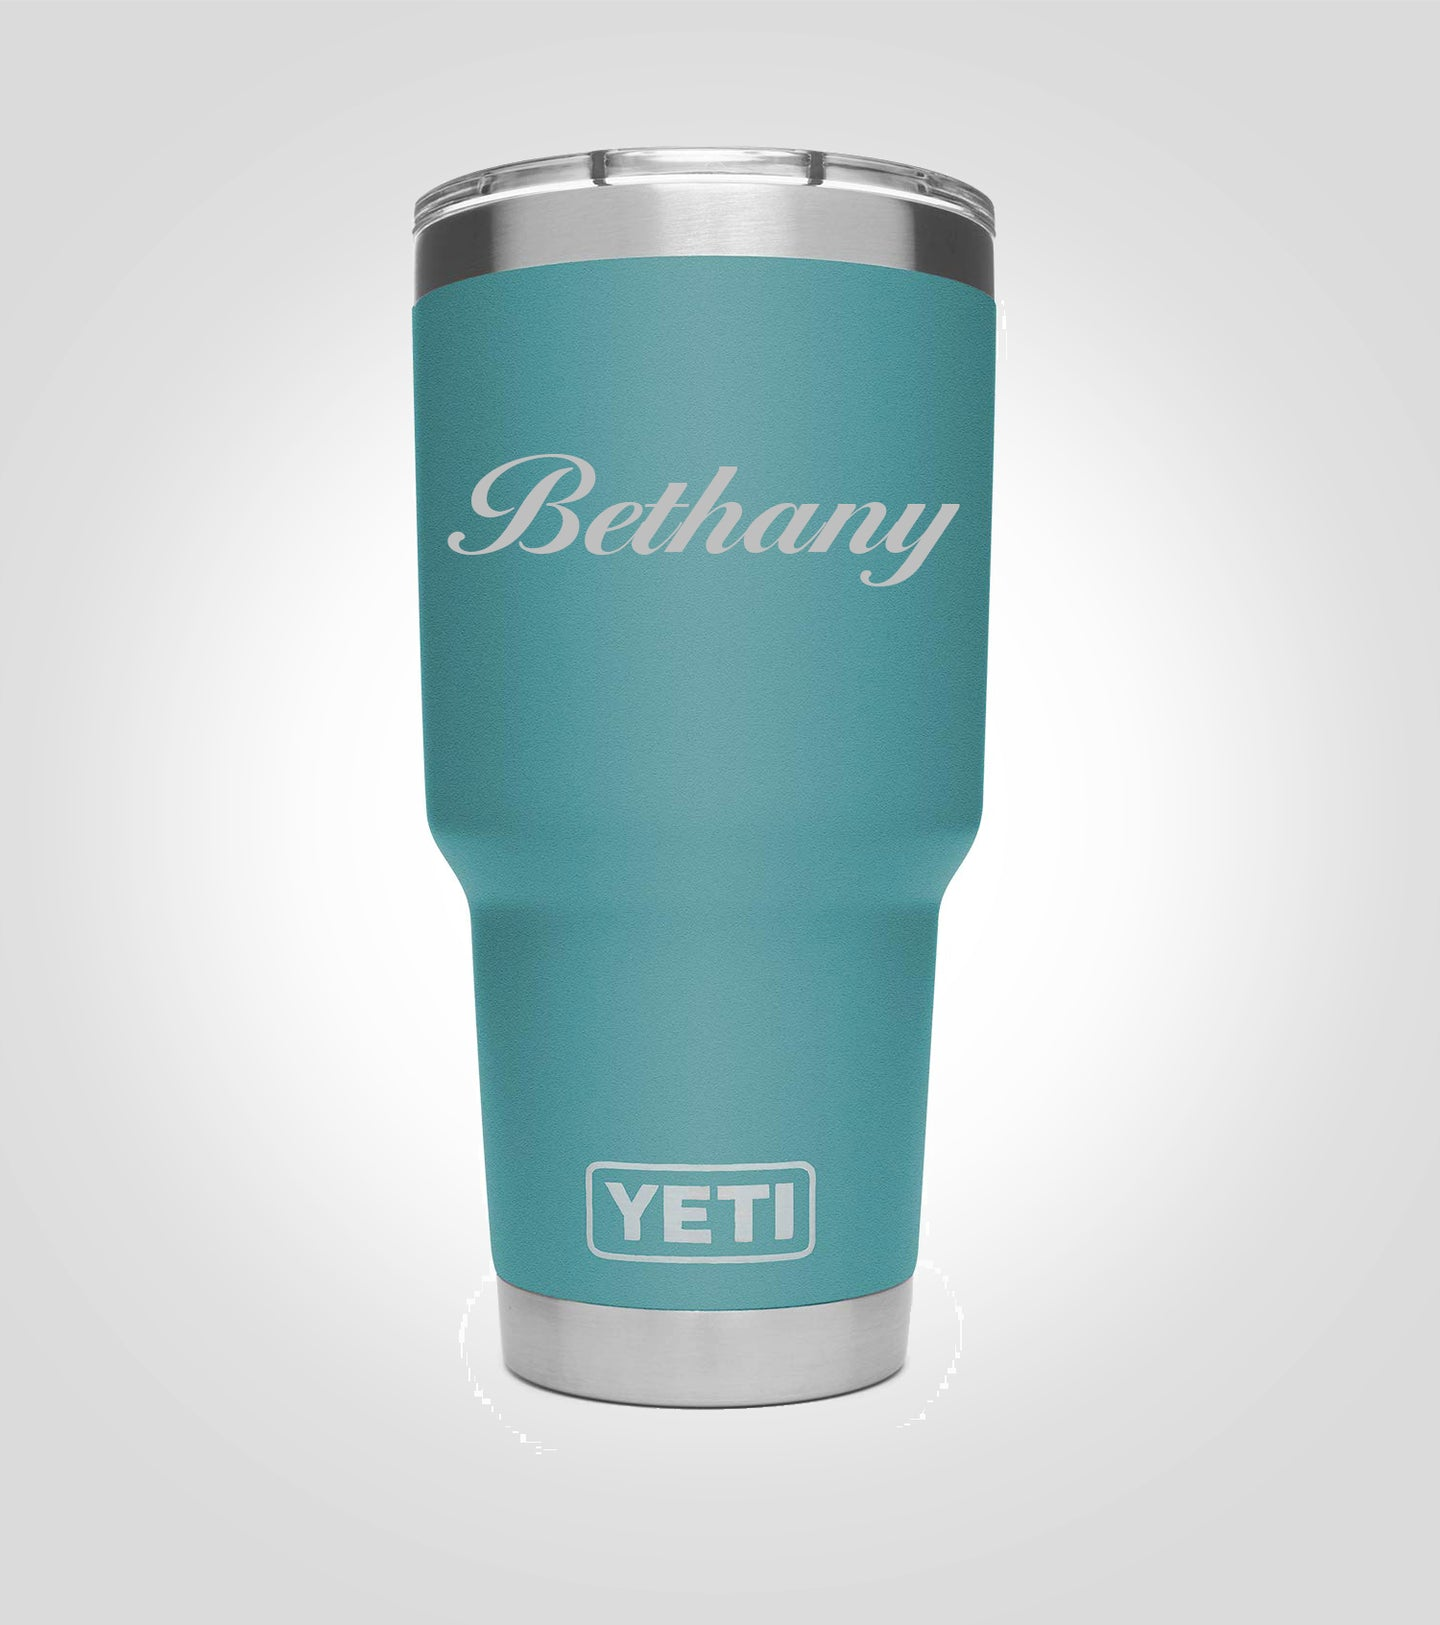 Yeti 30oz. Tumbler | Your Name